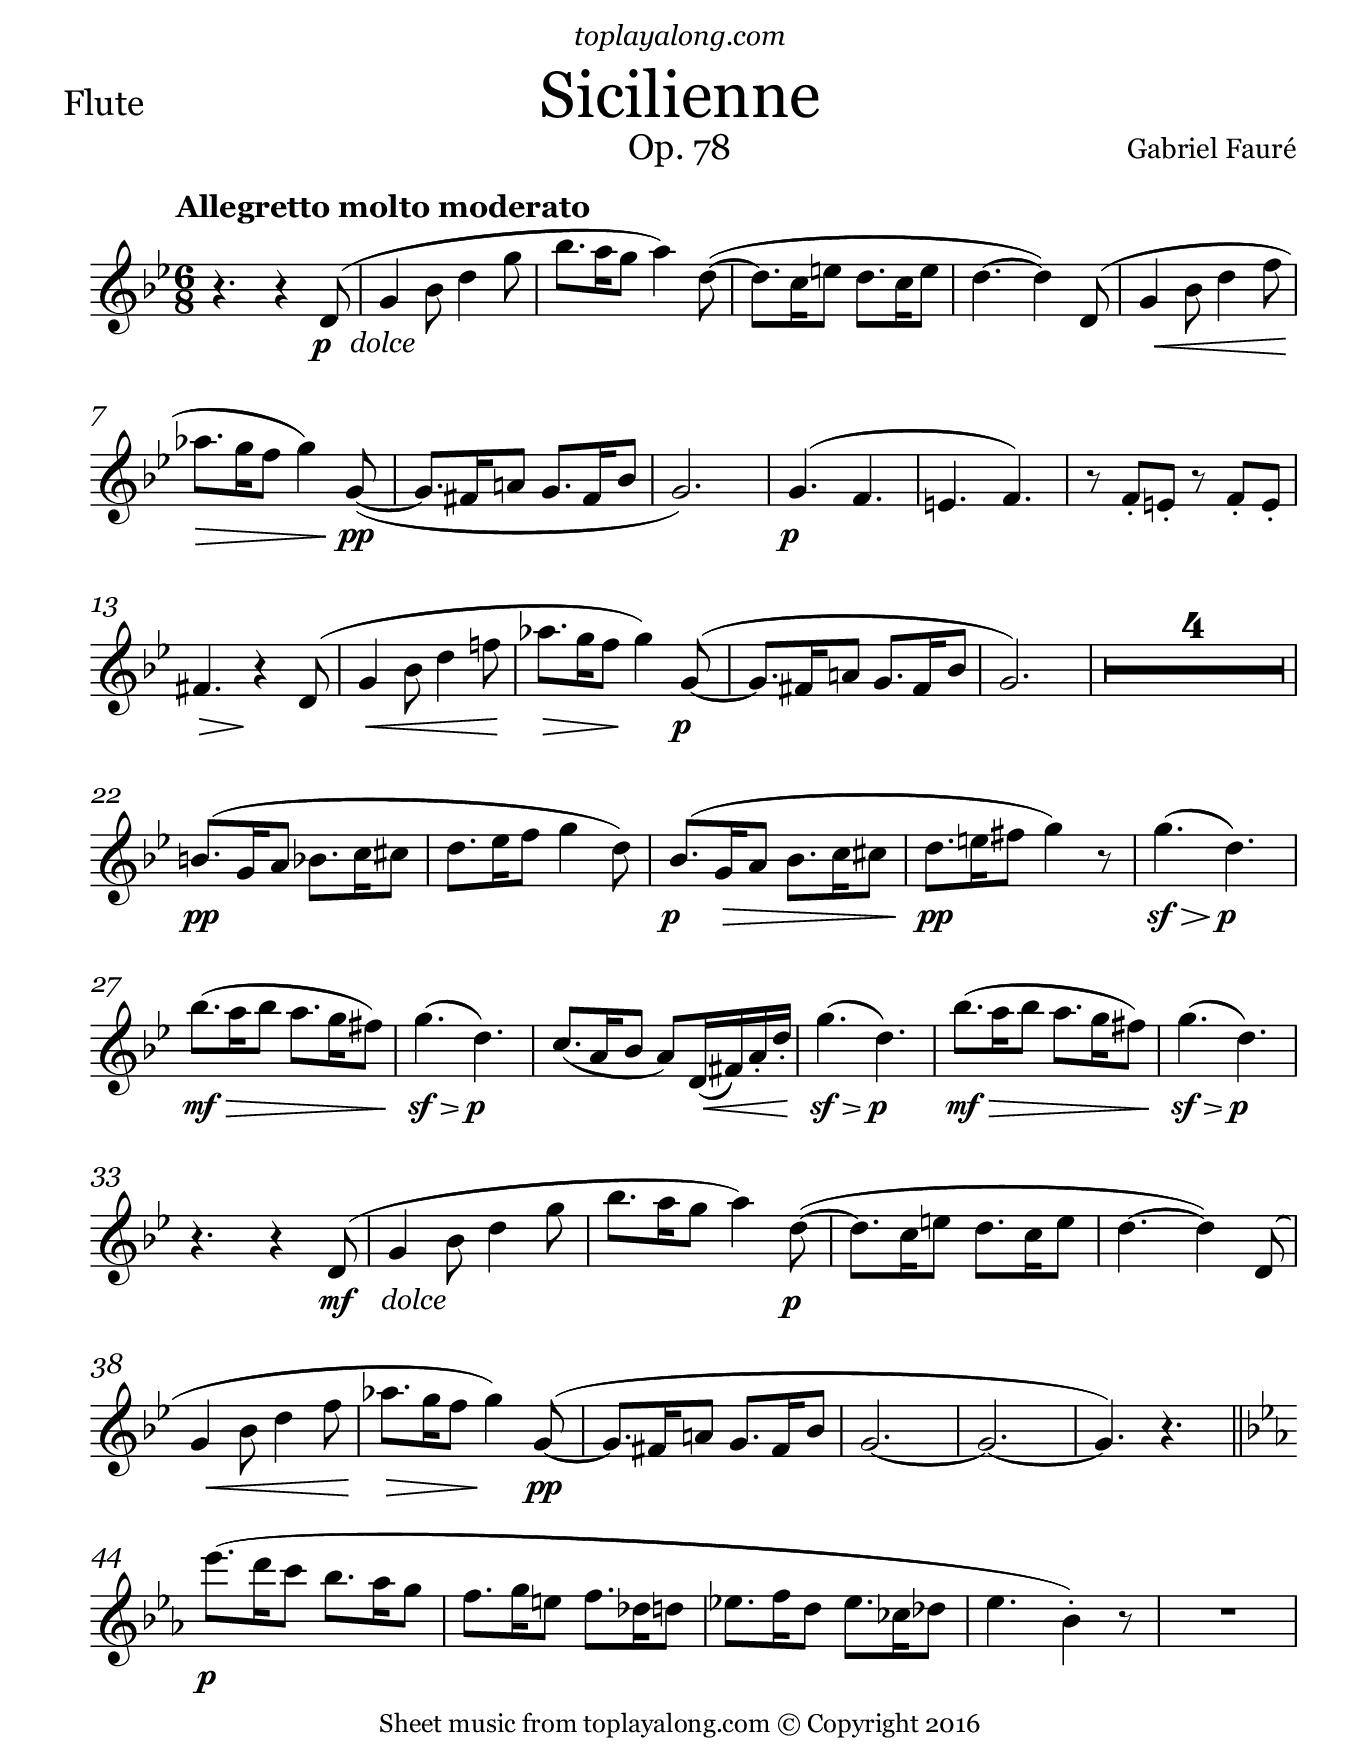 Sicilienne Op. 78 by Fauré. Sheet music for Flute, page 1.